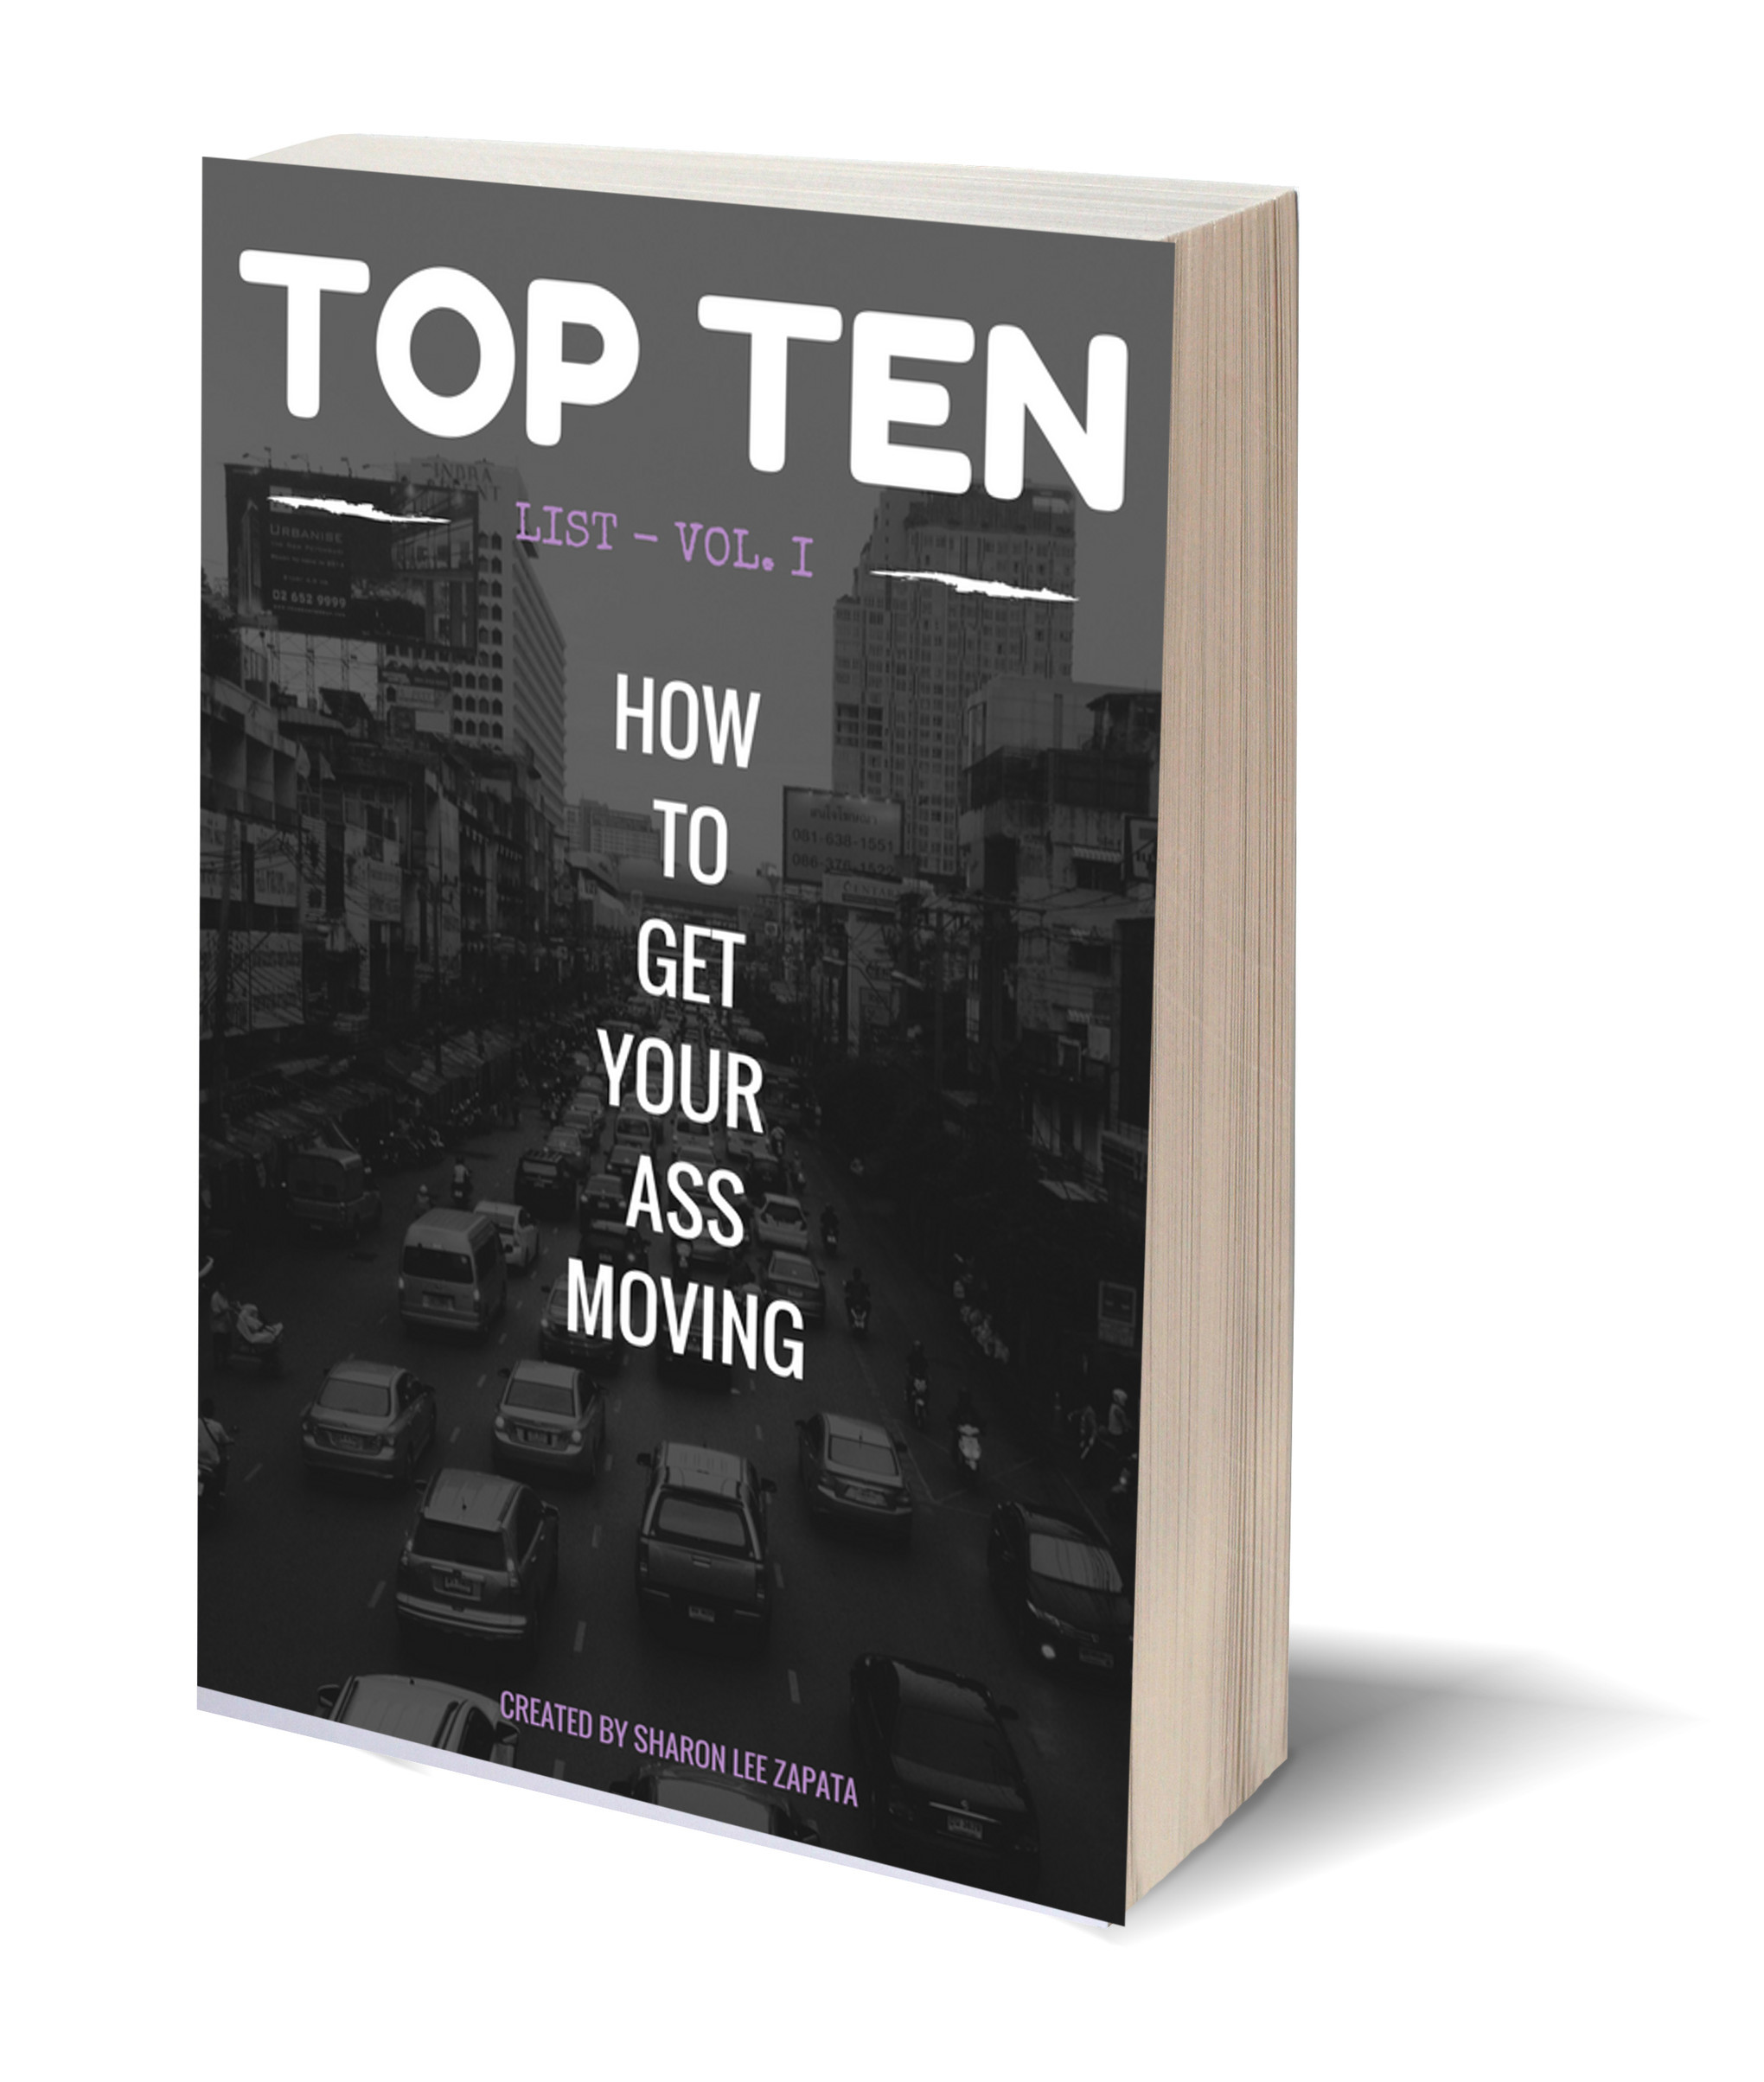 Top 10 List How To Get Your Ass Moving